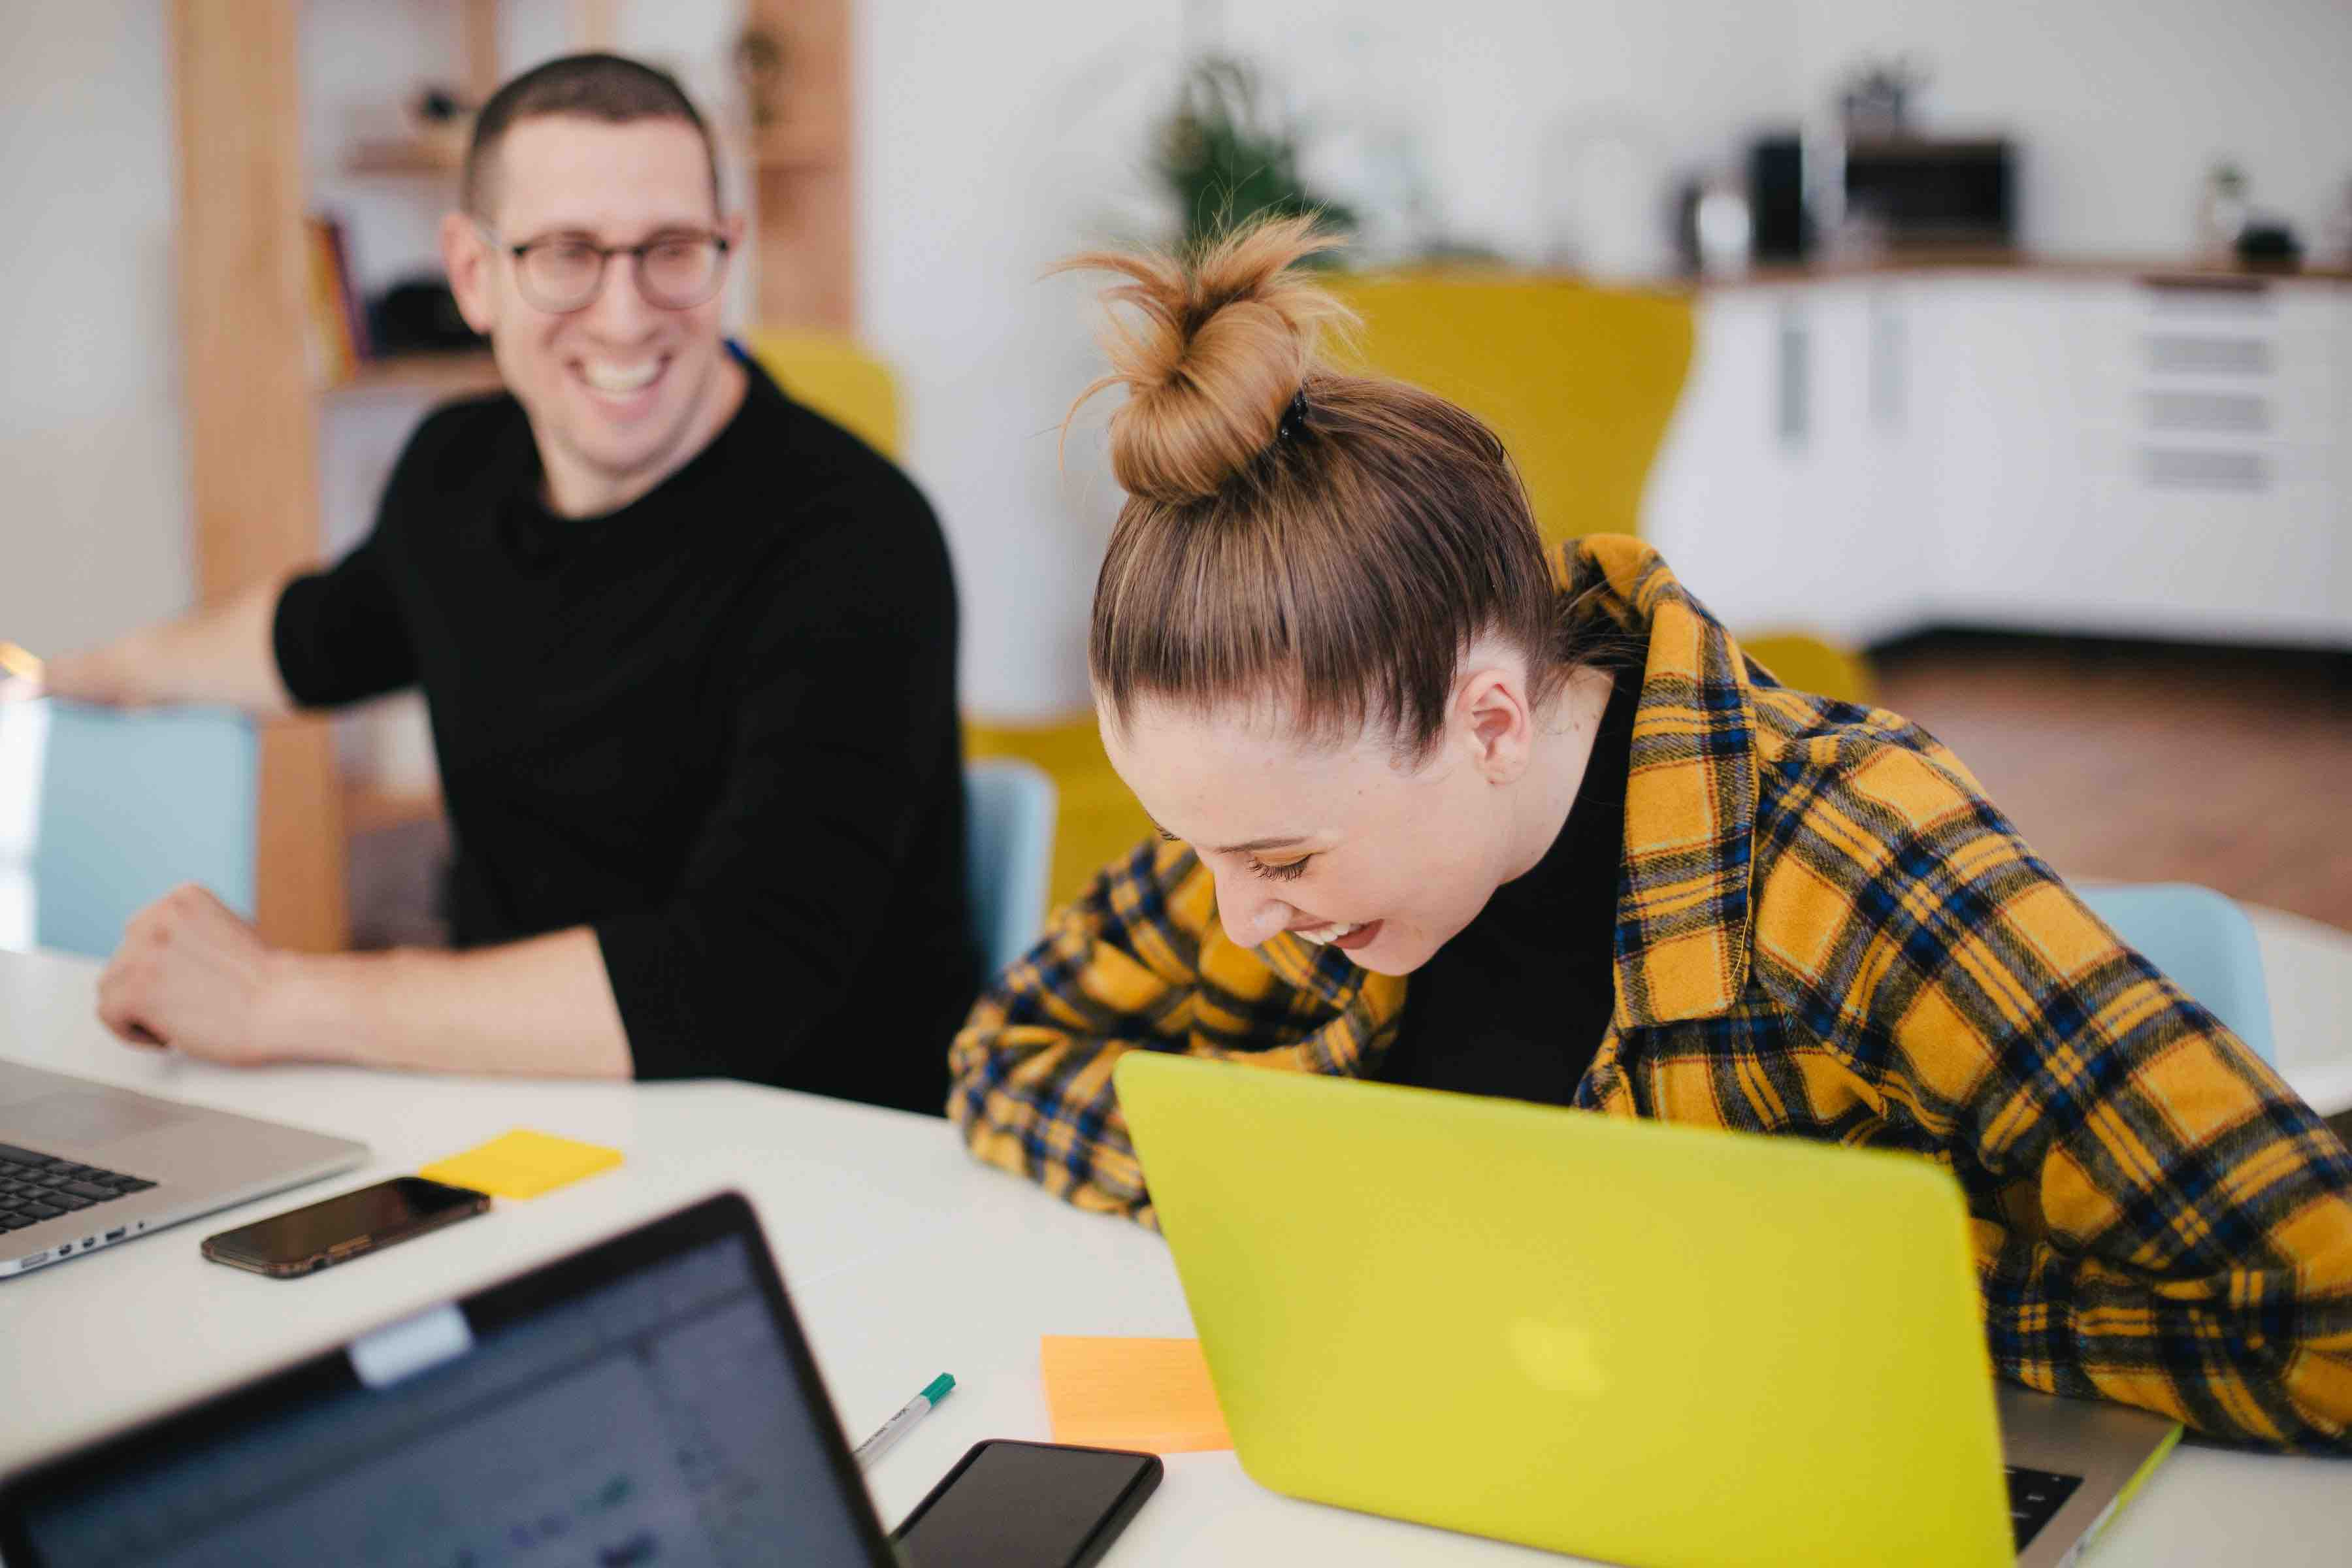 Employees happily engaging with each other